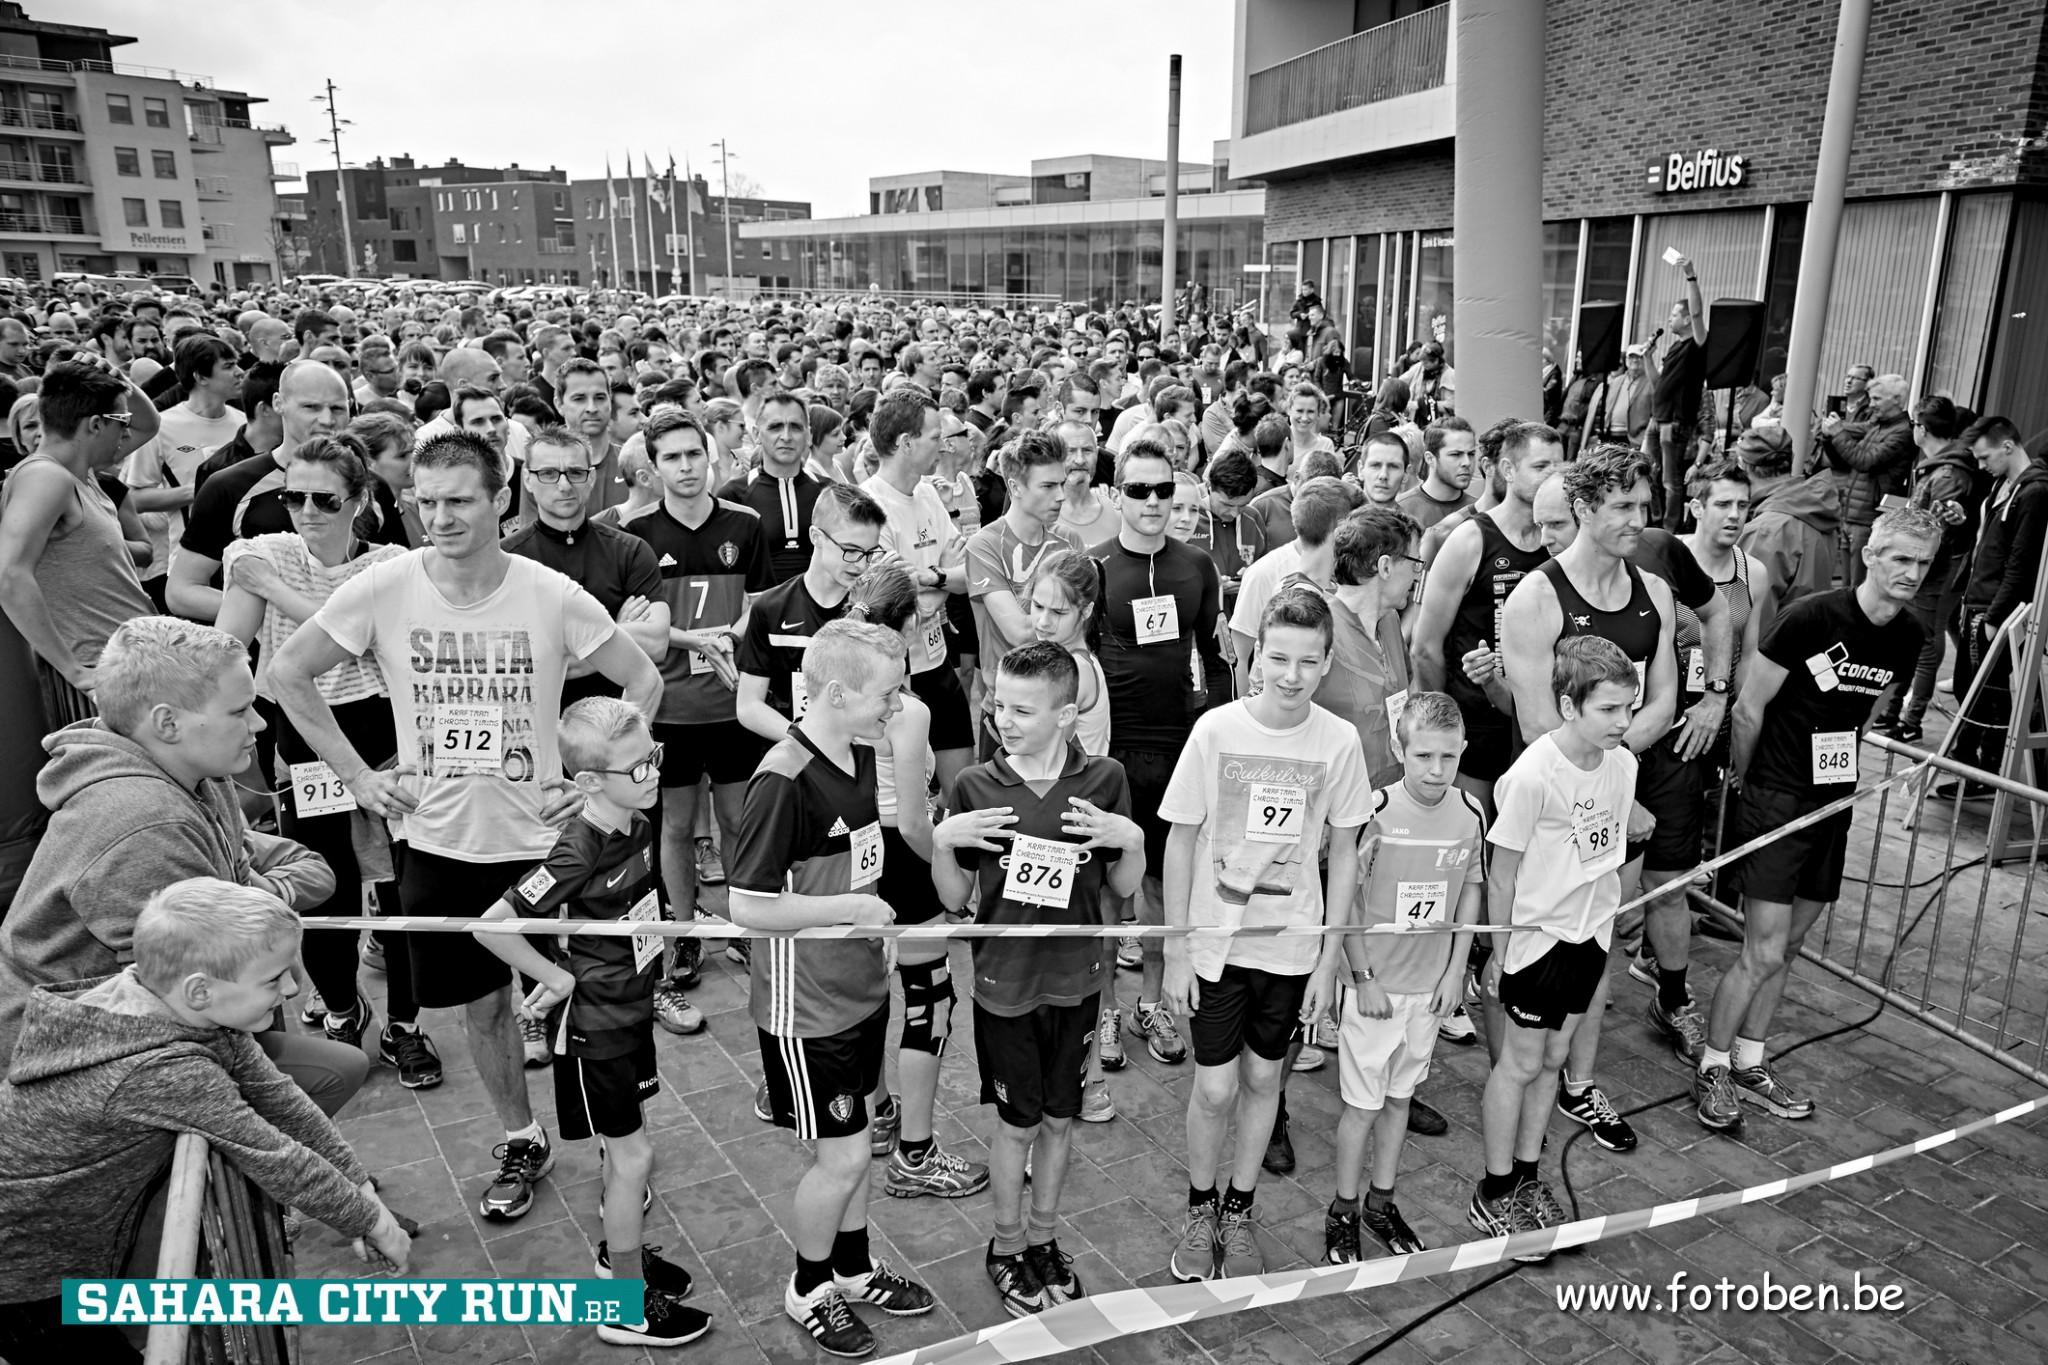 Sahara city run Lommel